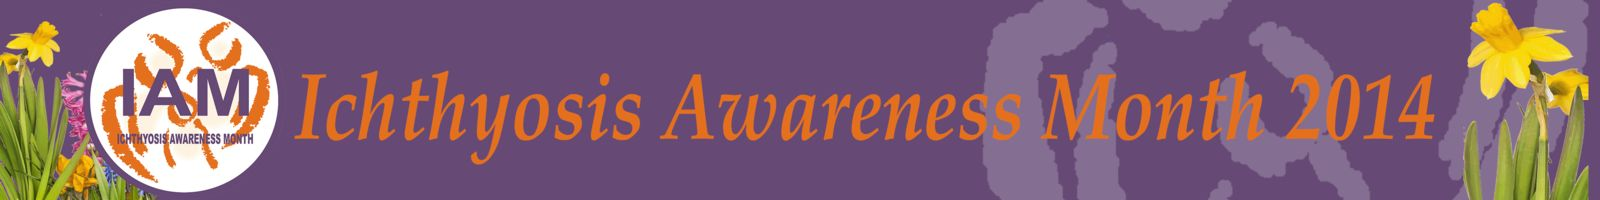 Awareness Month Member Stories 2014